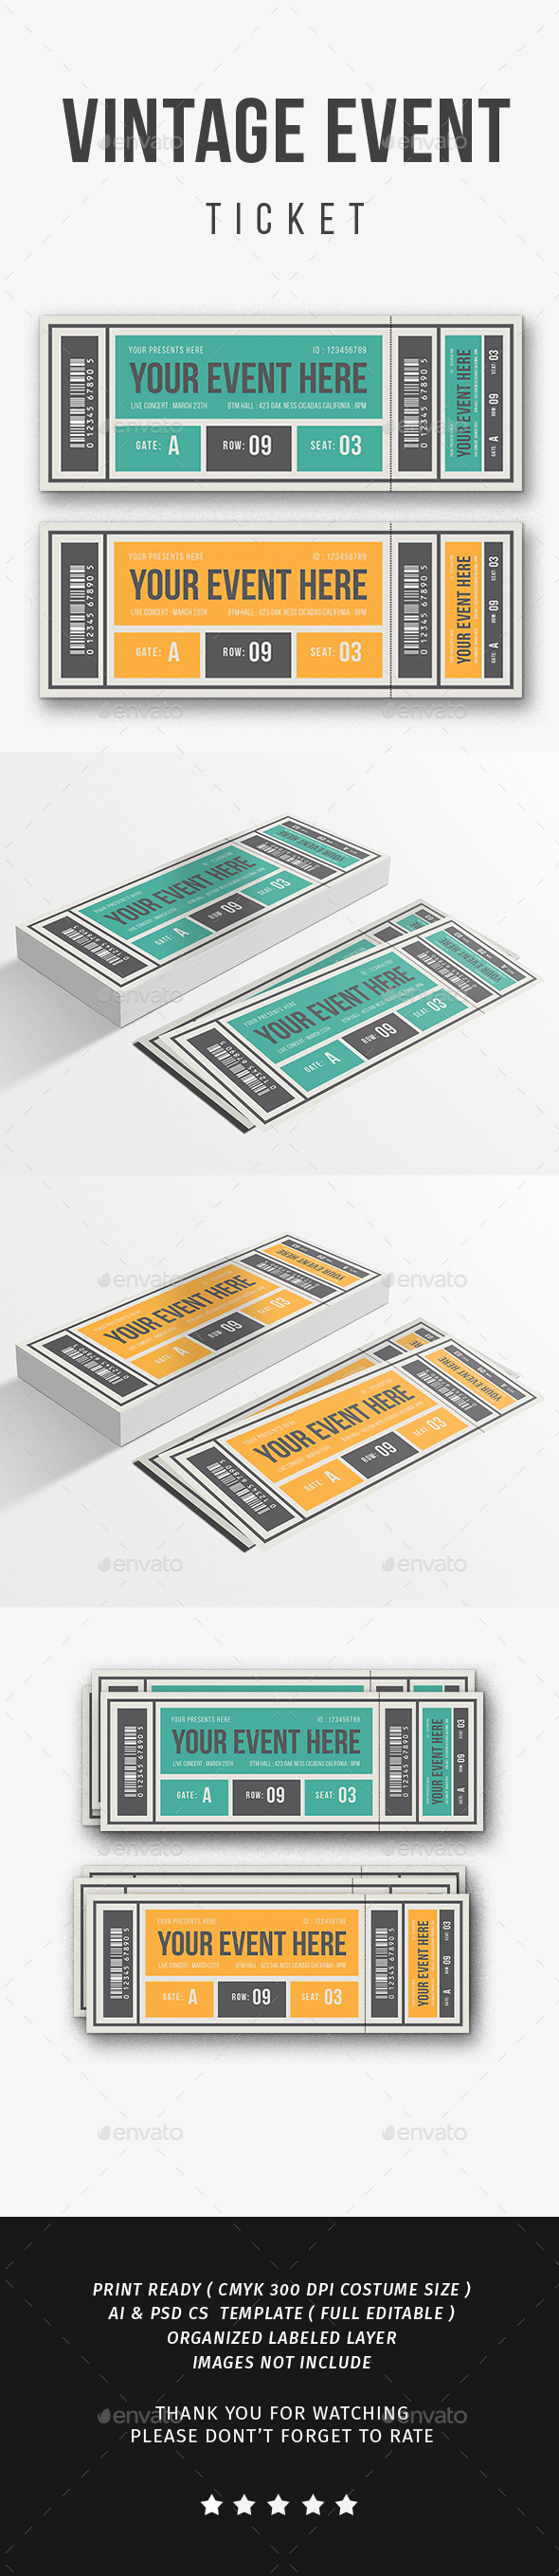 GraphicRiver Vintage Event Ticket Vol.2 21196058